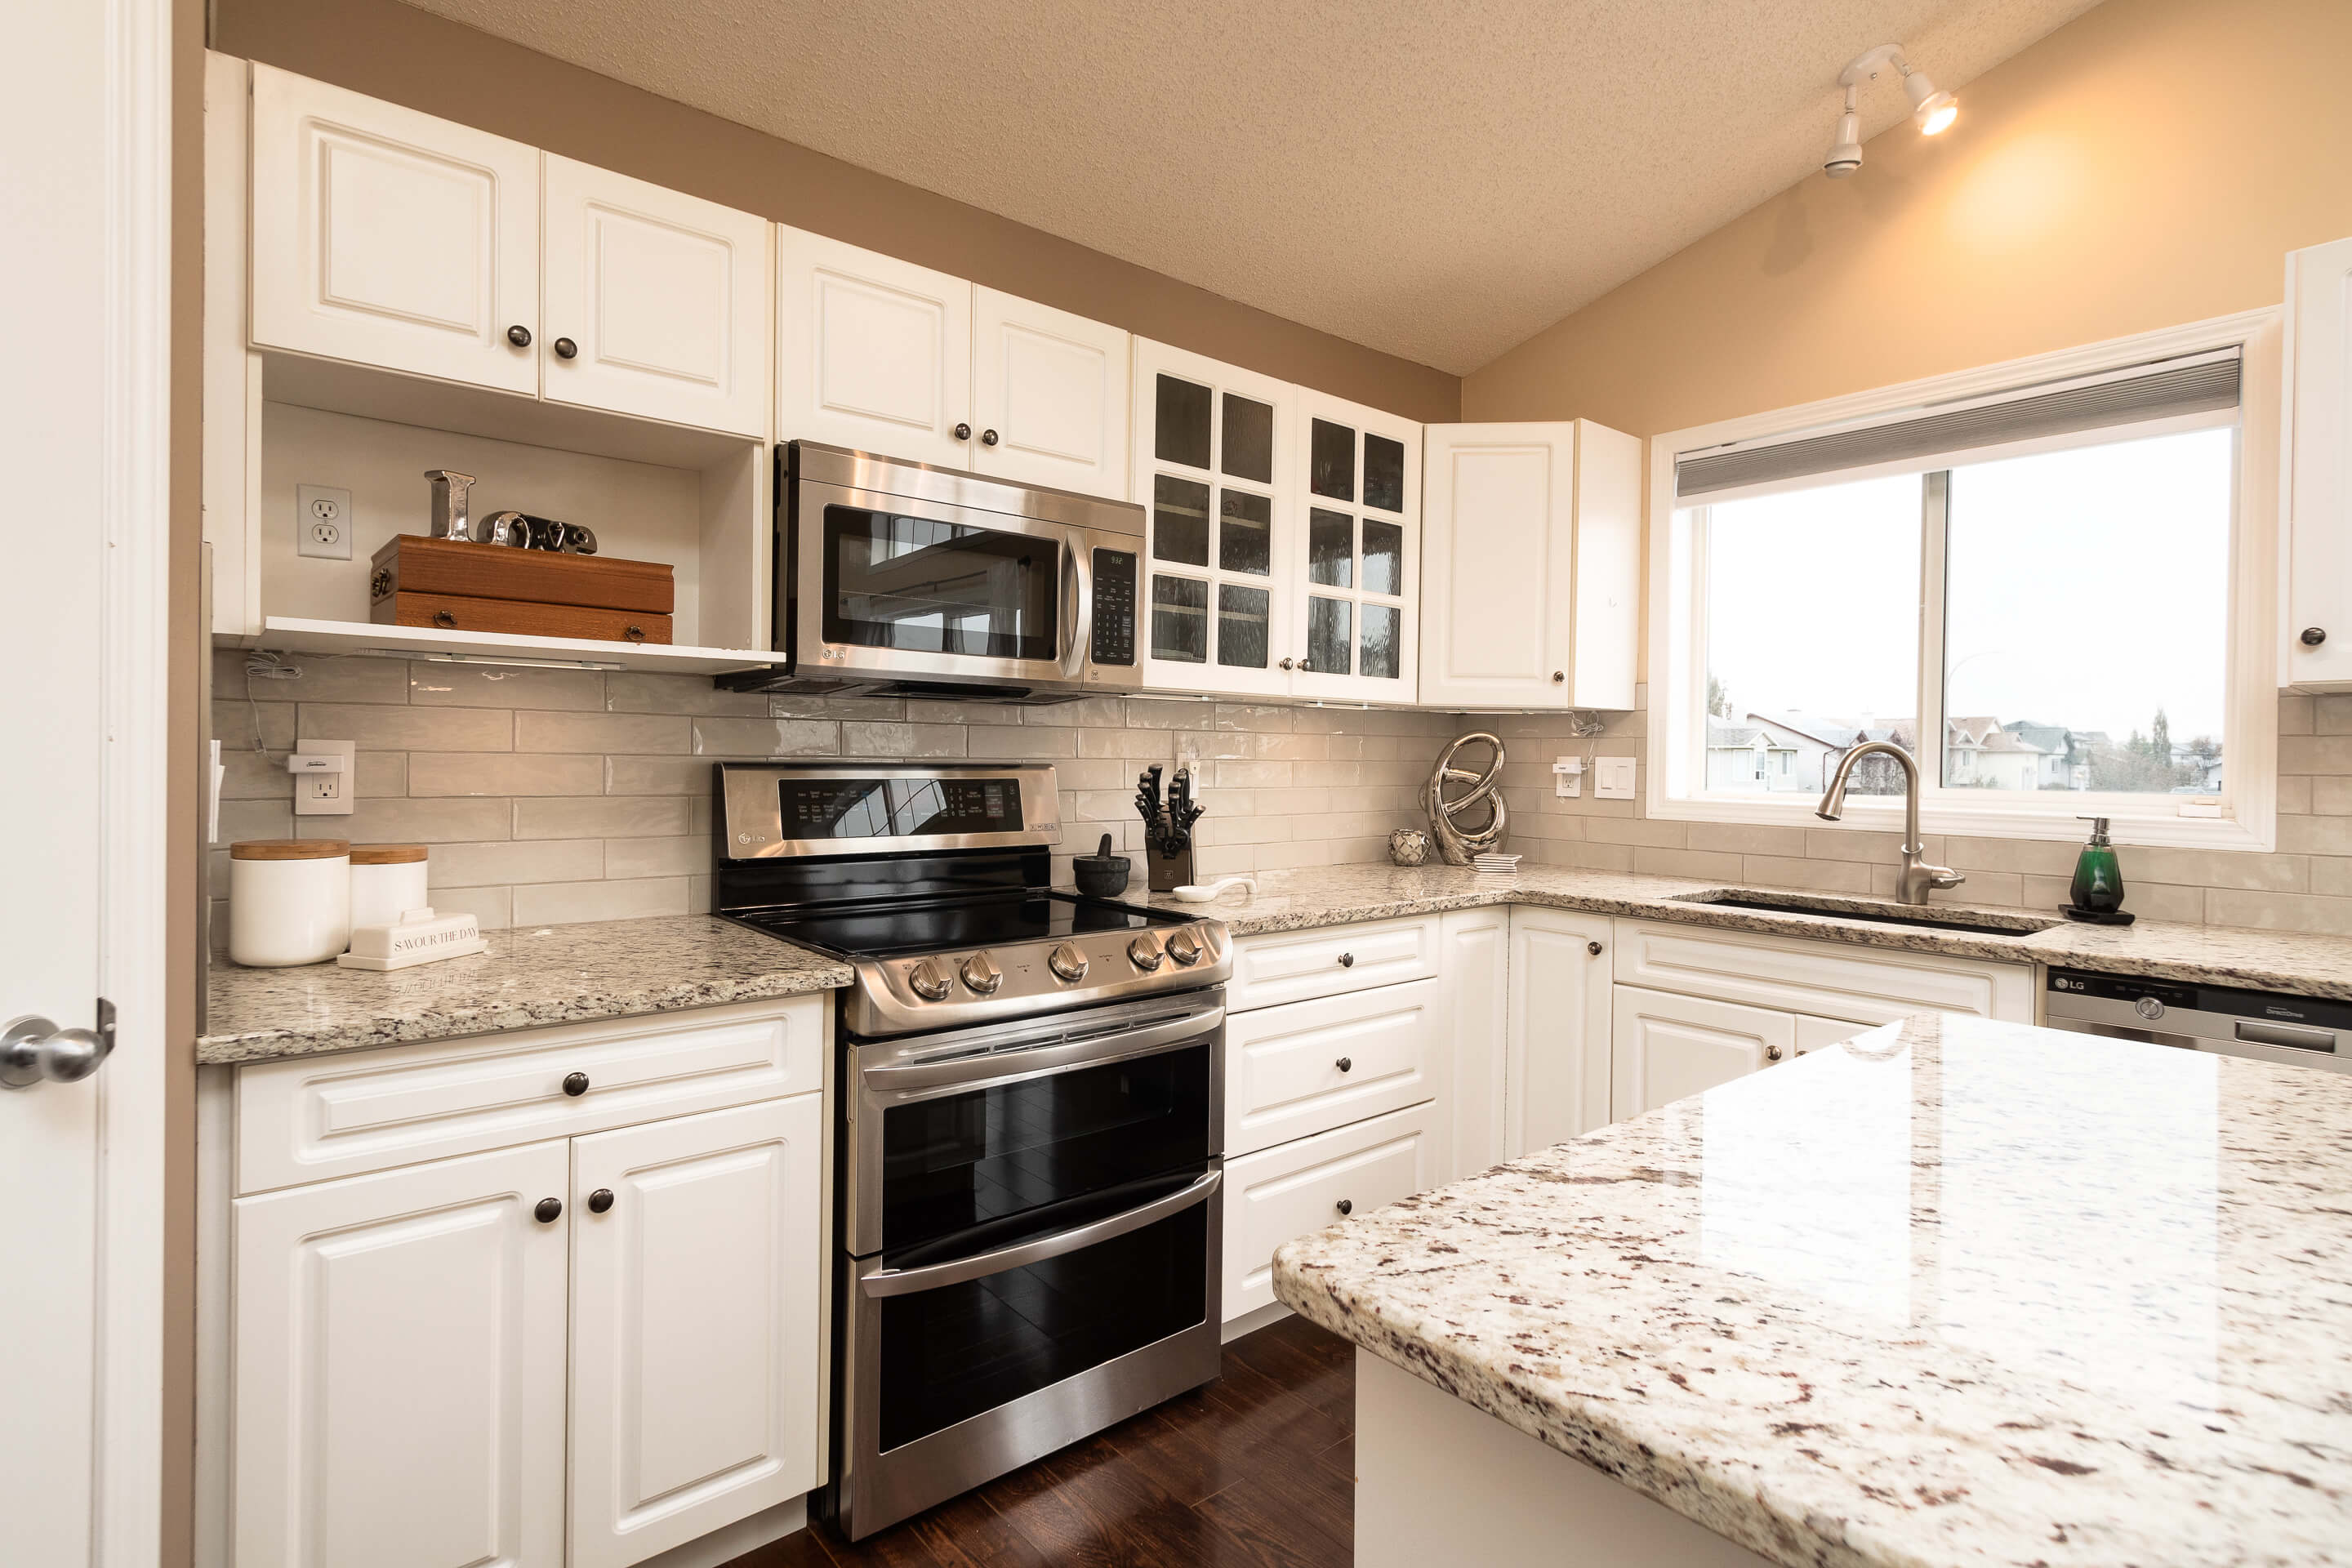 Hello Gorgeous - 225 Stonegate Crescent NW Airdrie - Tara Molina Real Estate (7 of 37)